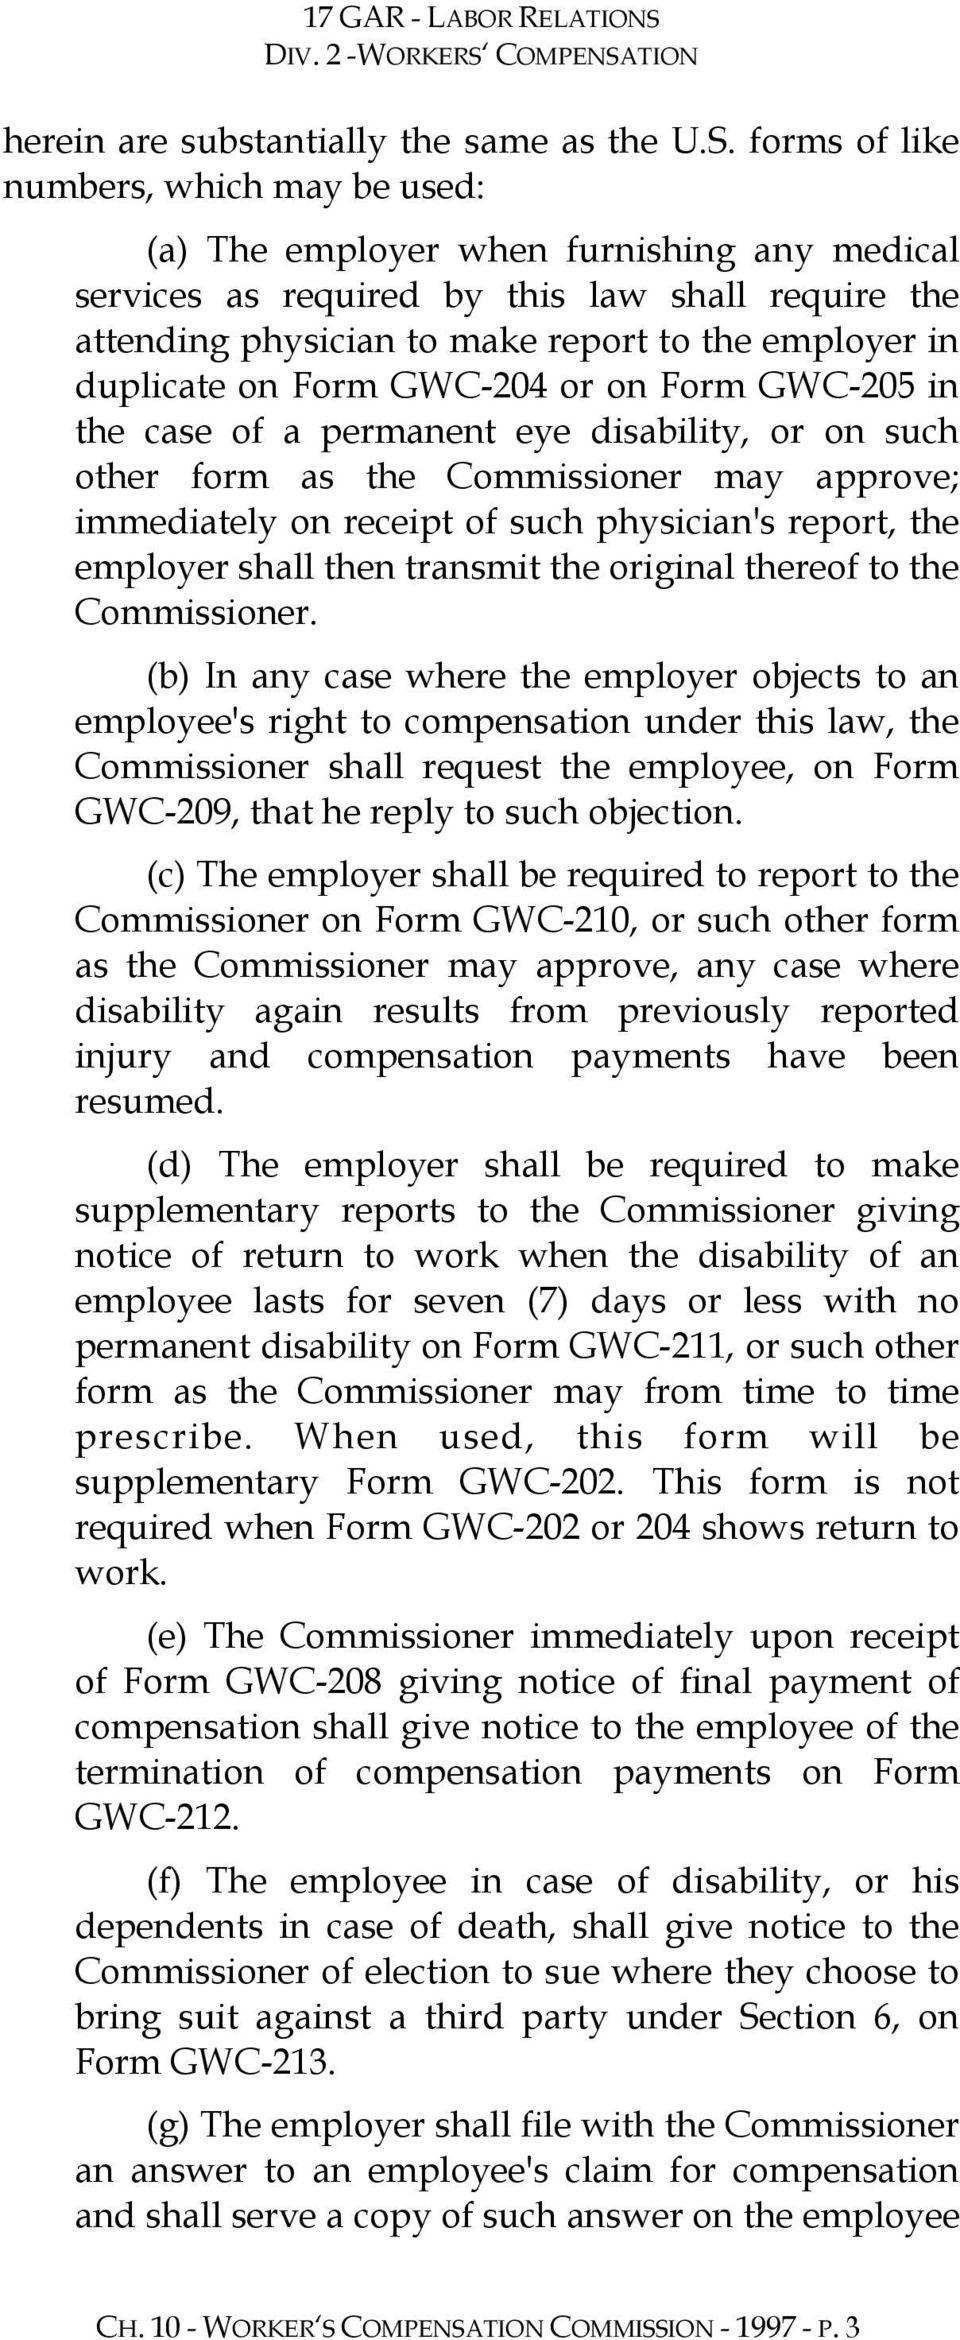 duplicate on Form GWC-204 or on Form GWC-205 in the case of a permanent eye disability, or on such other form as the Commissioner may approve; immediately on receipt of such physician's report, the